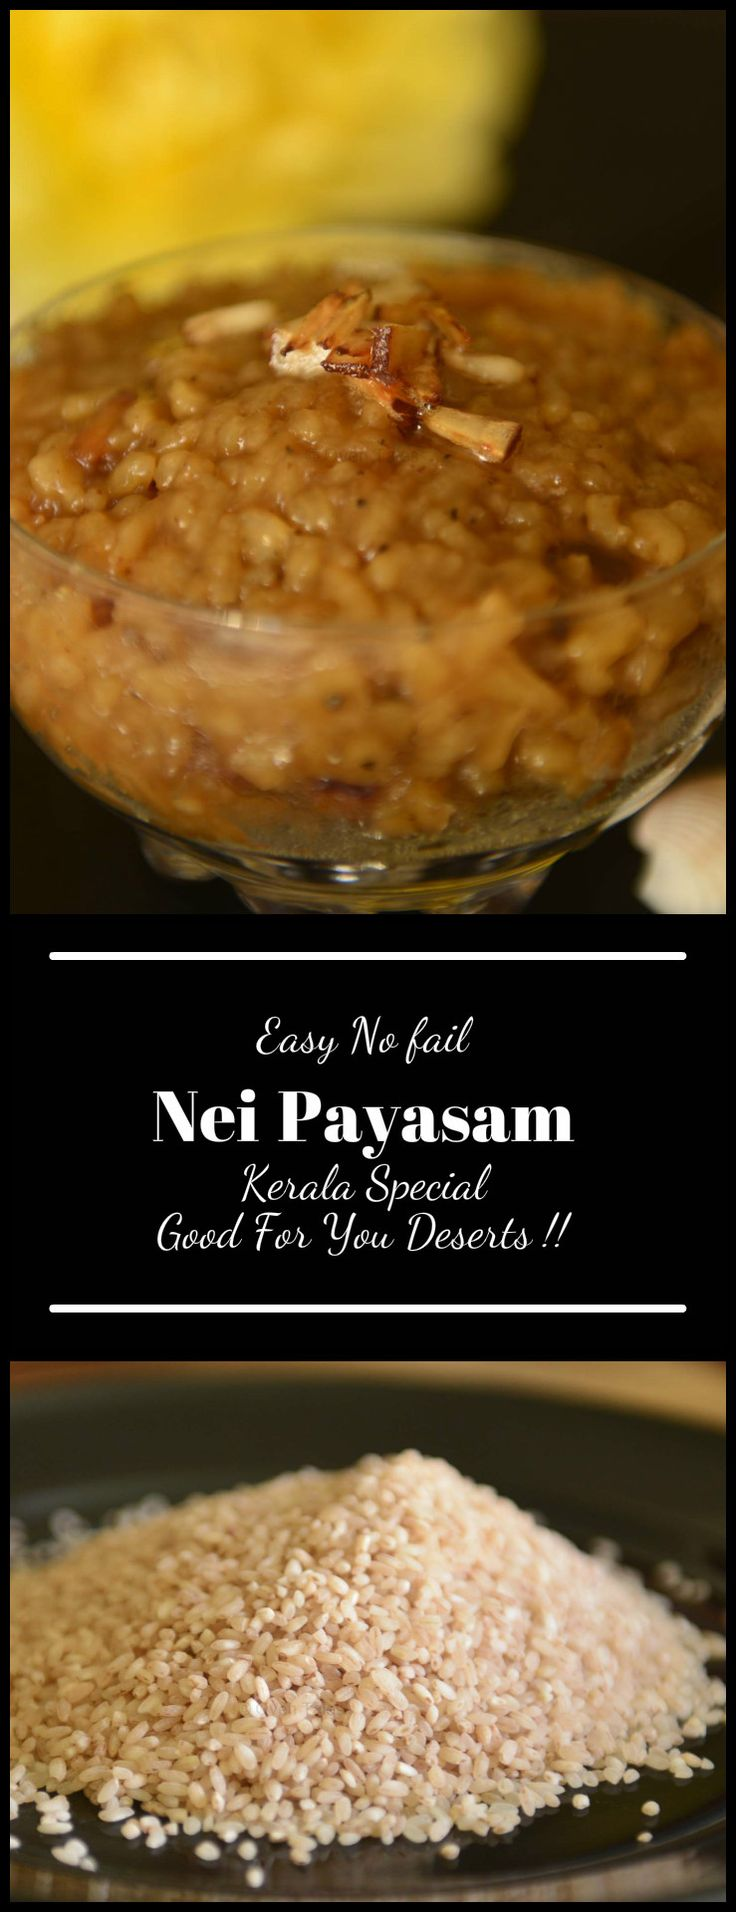 Thick , dark sweet Nei Paysam is a a Kerala specialty. Made with healthy nutritious , raw ingredients like jaggery, rice , coconut and ghee this is a popular temple offering (prasad). And to top it - it is gluten free as well !!